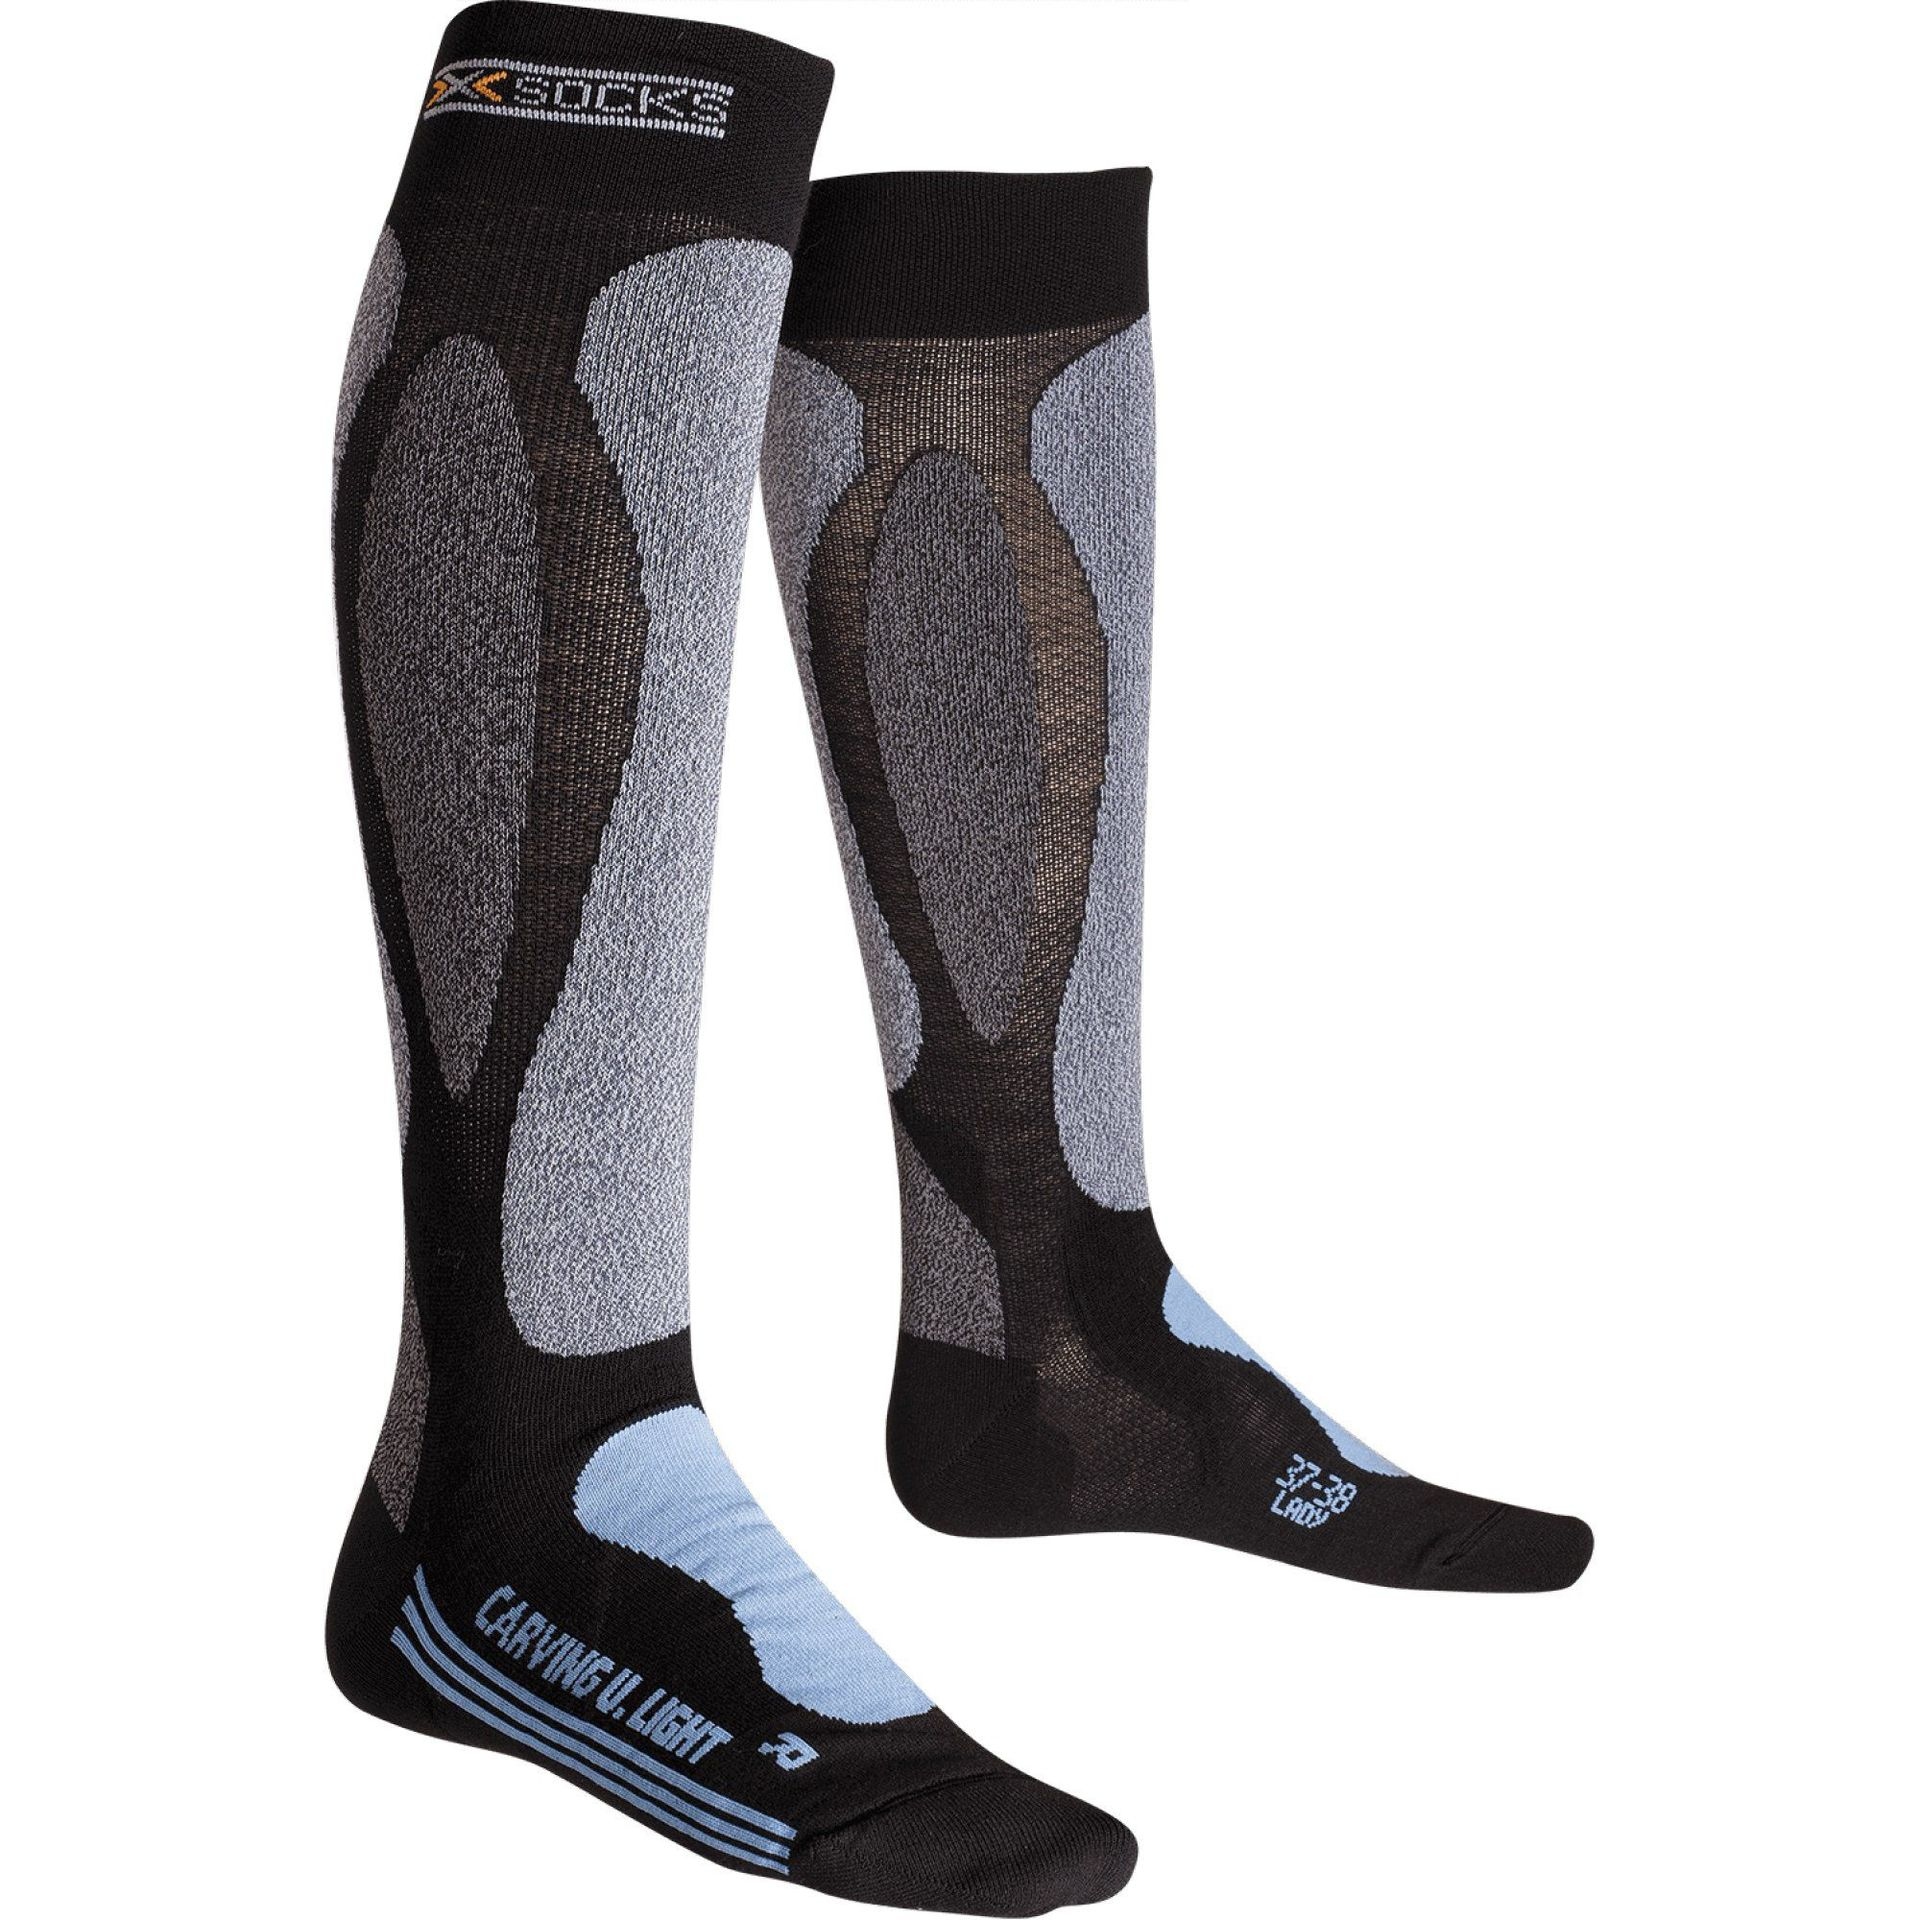 SKARPETY NARCIARSKIE X-SOCKS SKI CARVING ULTRALIGHT LADY B112